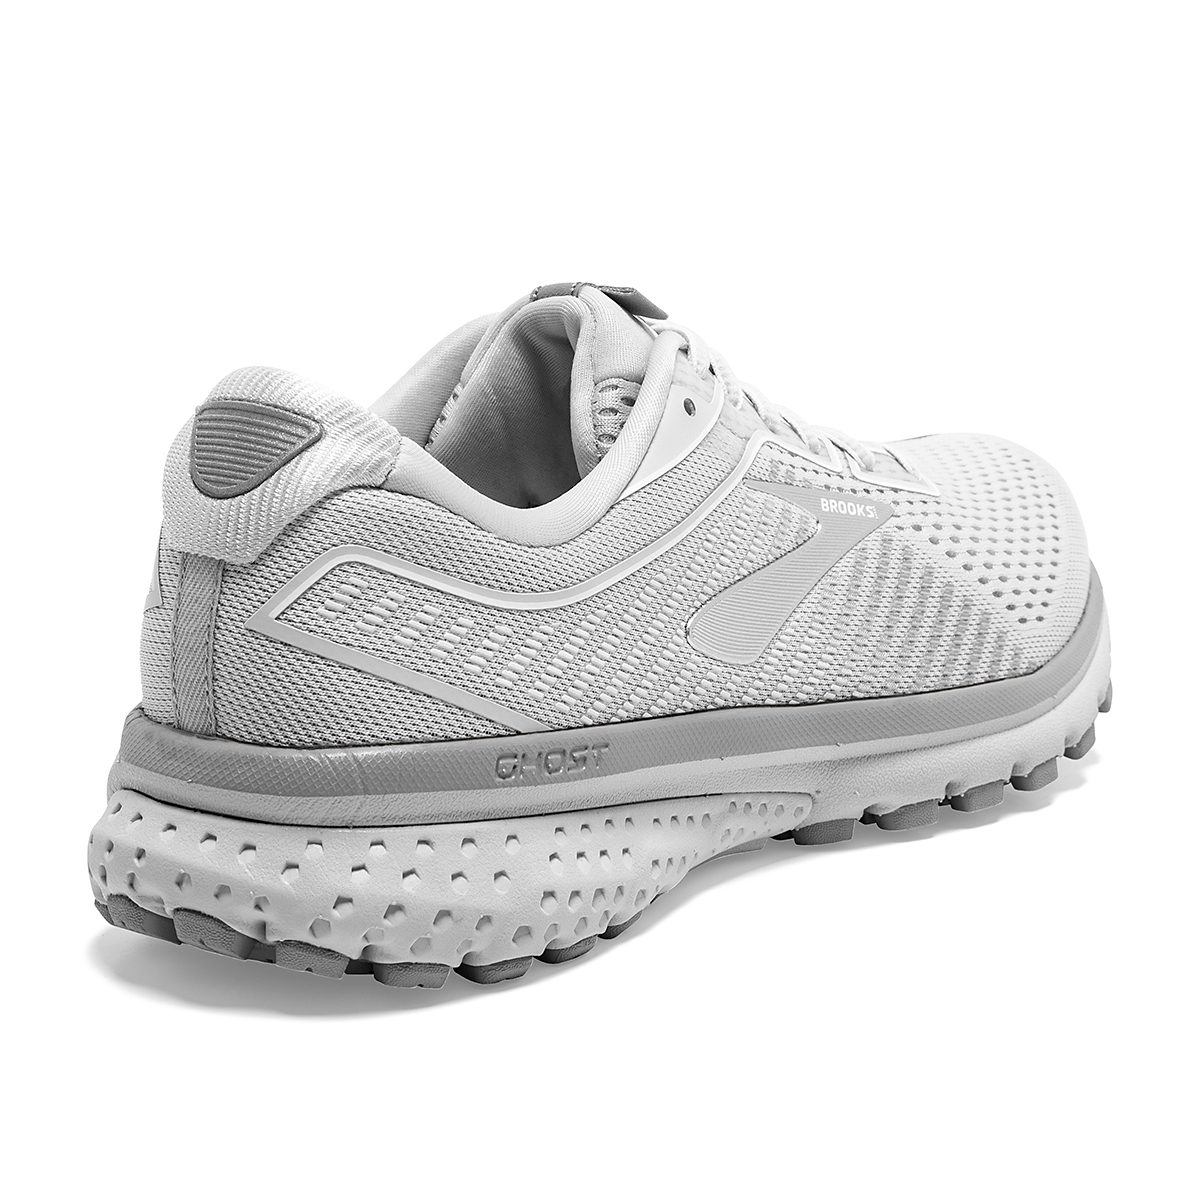 Women's Brooks Ghost 12 Running Shoe - Color: Oyster/Alloy/White - Size: 8.5 - Width: Regular, Oyster/Alloy/White, large, image 4